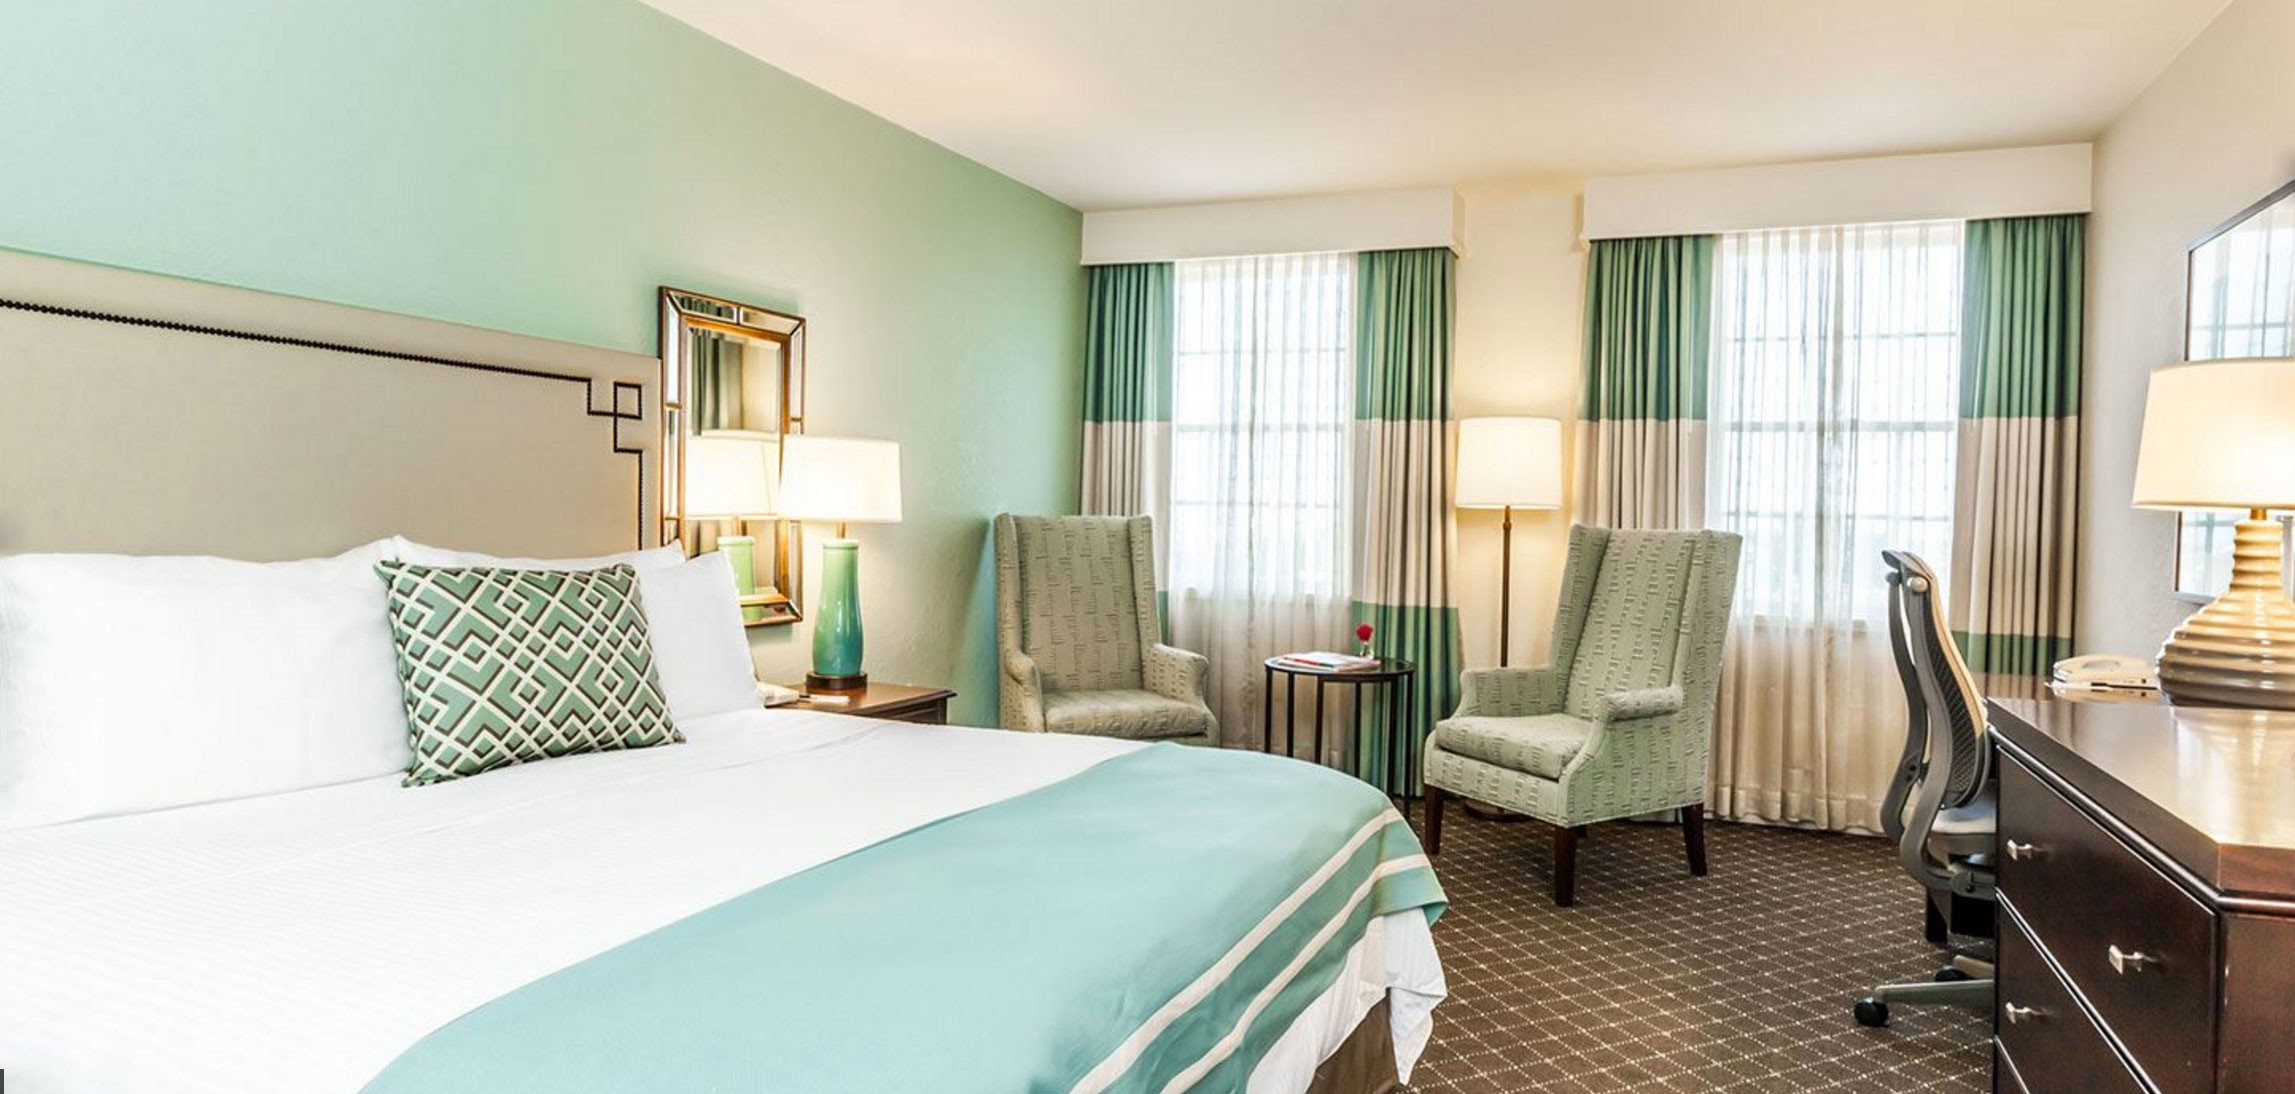 green chair property Bedroom Suite condominium cottage containing